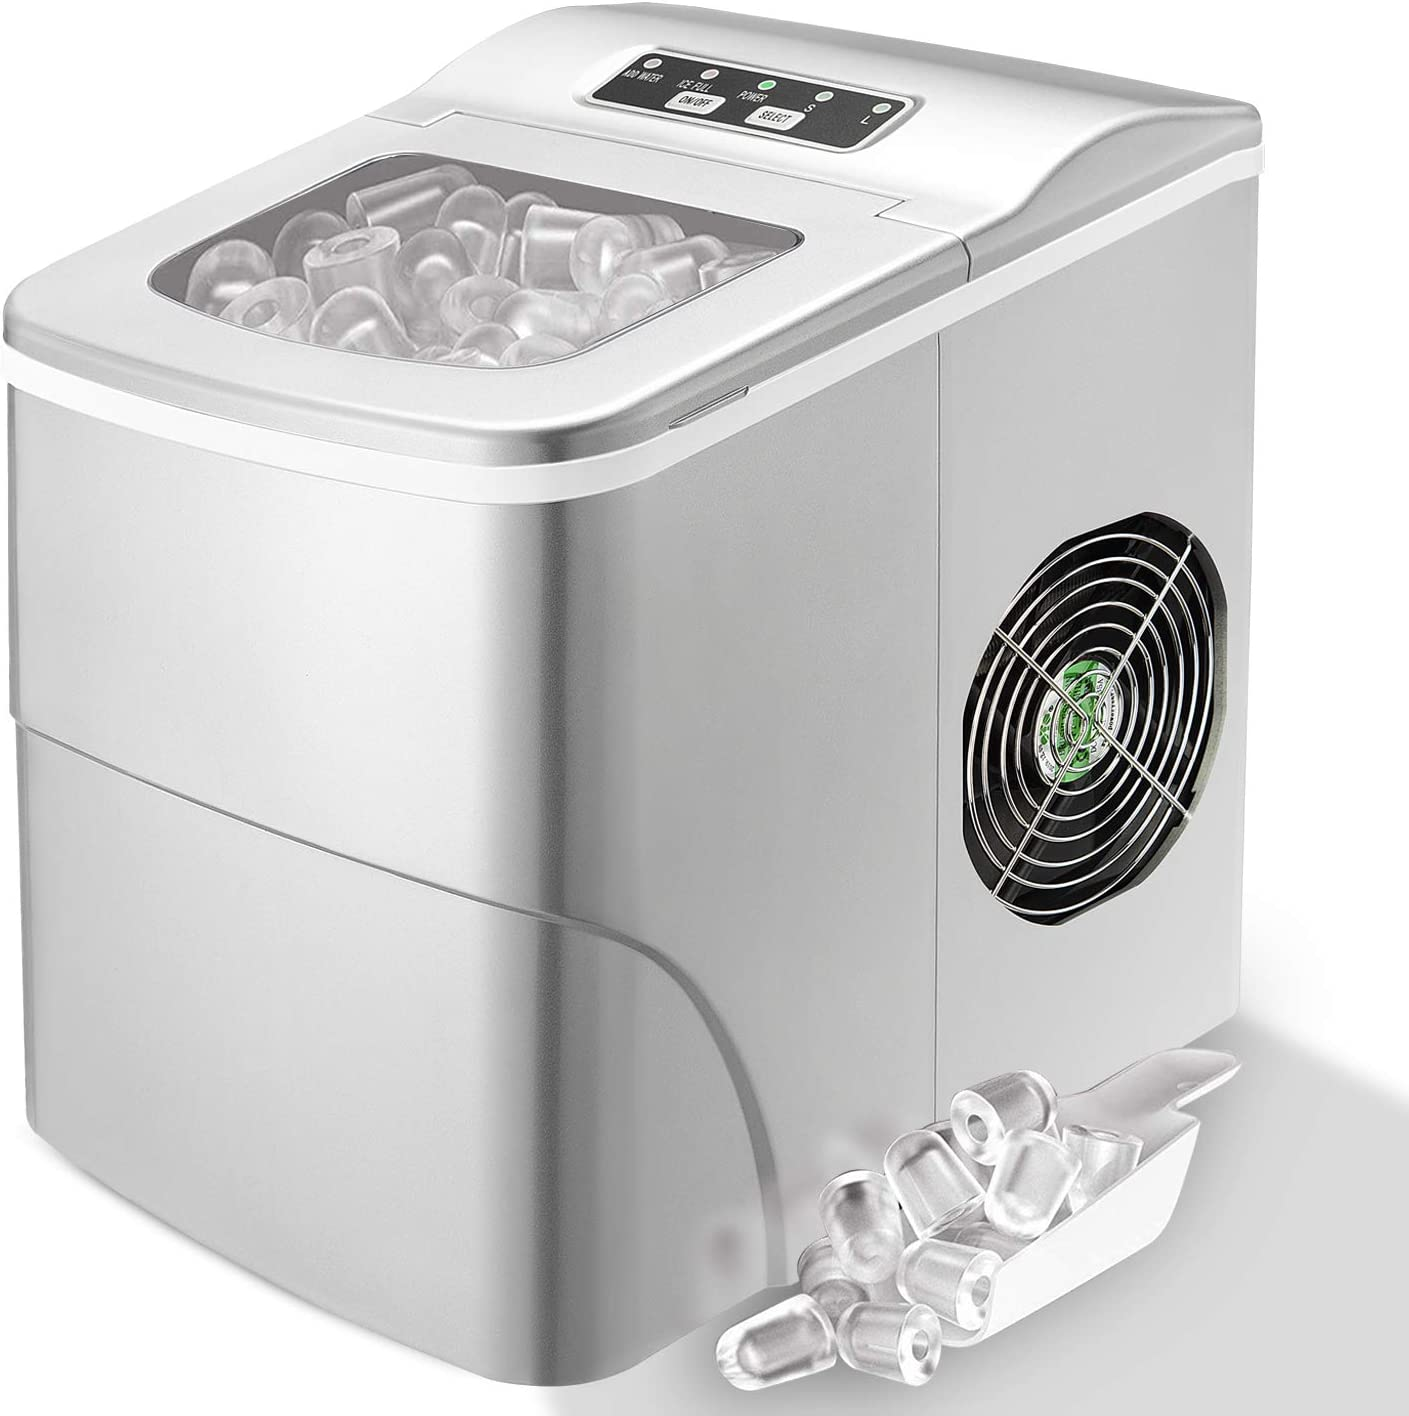 MOOSOO Ice Maker Countertop with Automatic Self-Cleaning 3 Types of Ice Size Ice Maker Machine with Basket /& 2 Scoops 9 Bullet Ice Cubes Ready in 8 Minutes,26lbs//24H Portable Ice Machine with LCD